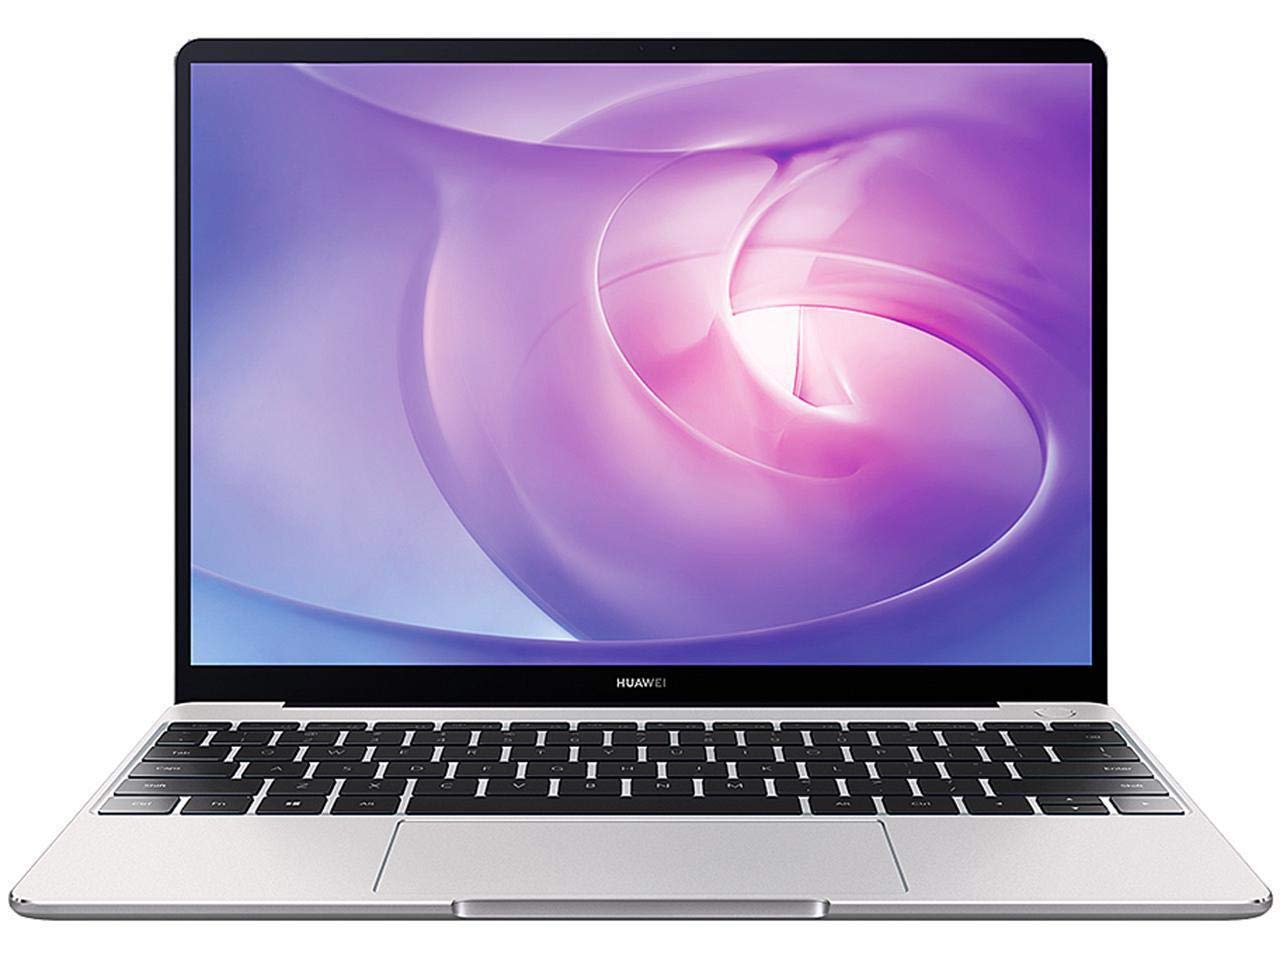 "Huawei Matebook 13 Signature Edn. Laptop - 13"" 2K Touch, 8th Gen i5, 8 GB RAM, 256 GB SSD, Silver (Renewed)"